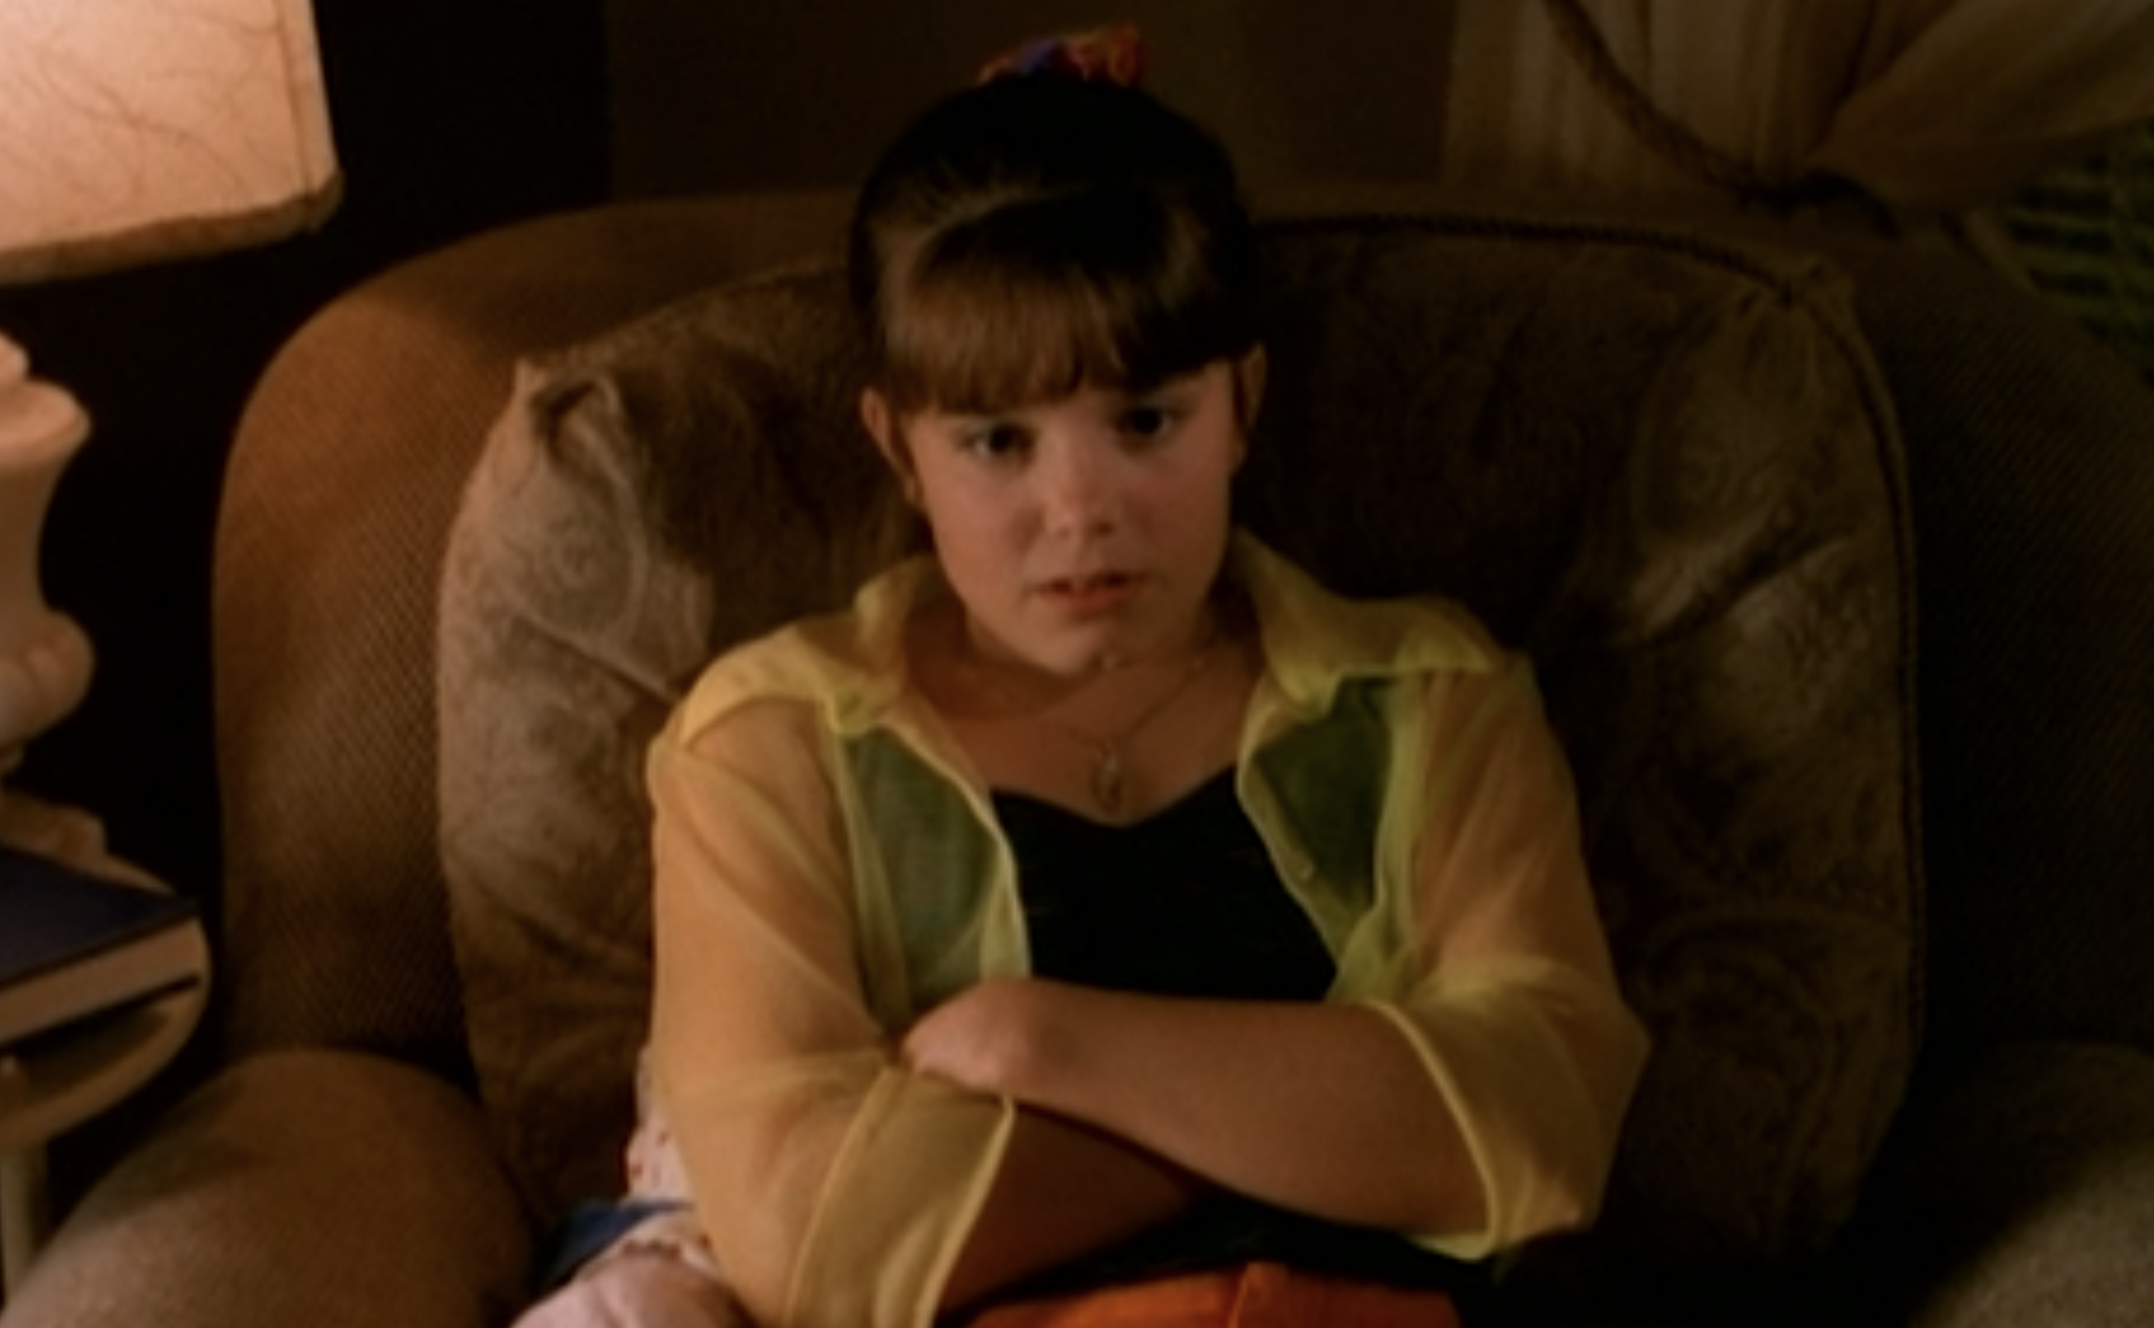 Marnie wearing a bright, see-through button-up over a dark tank top with a scrunchie holding up her hair